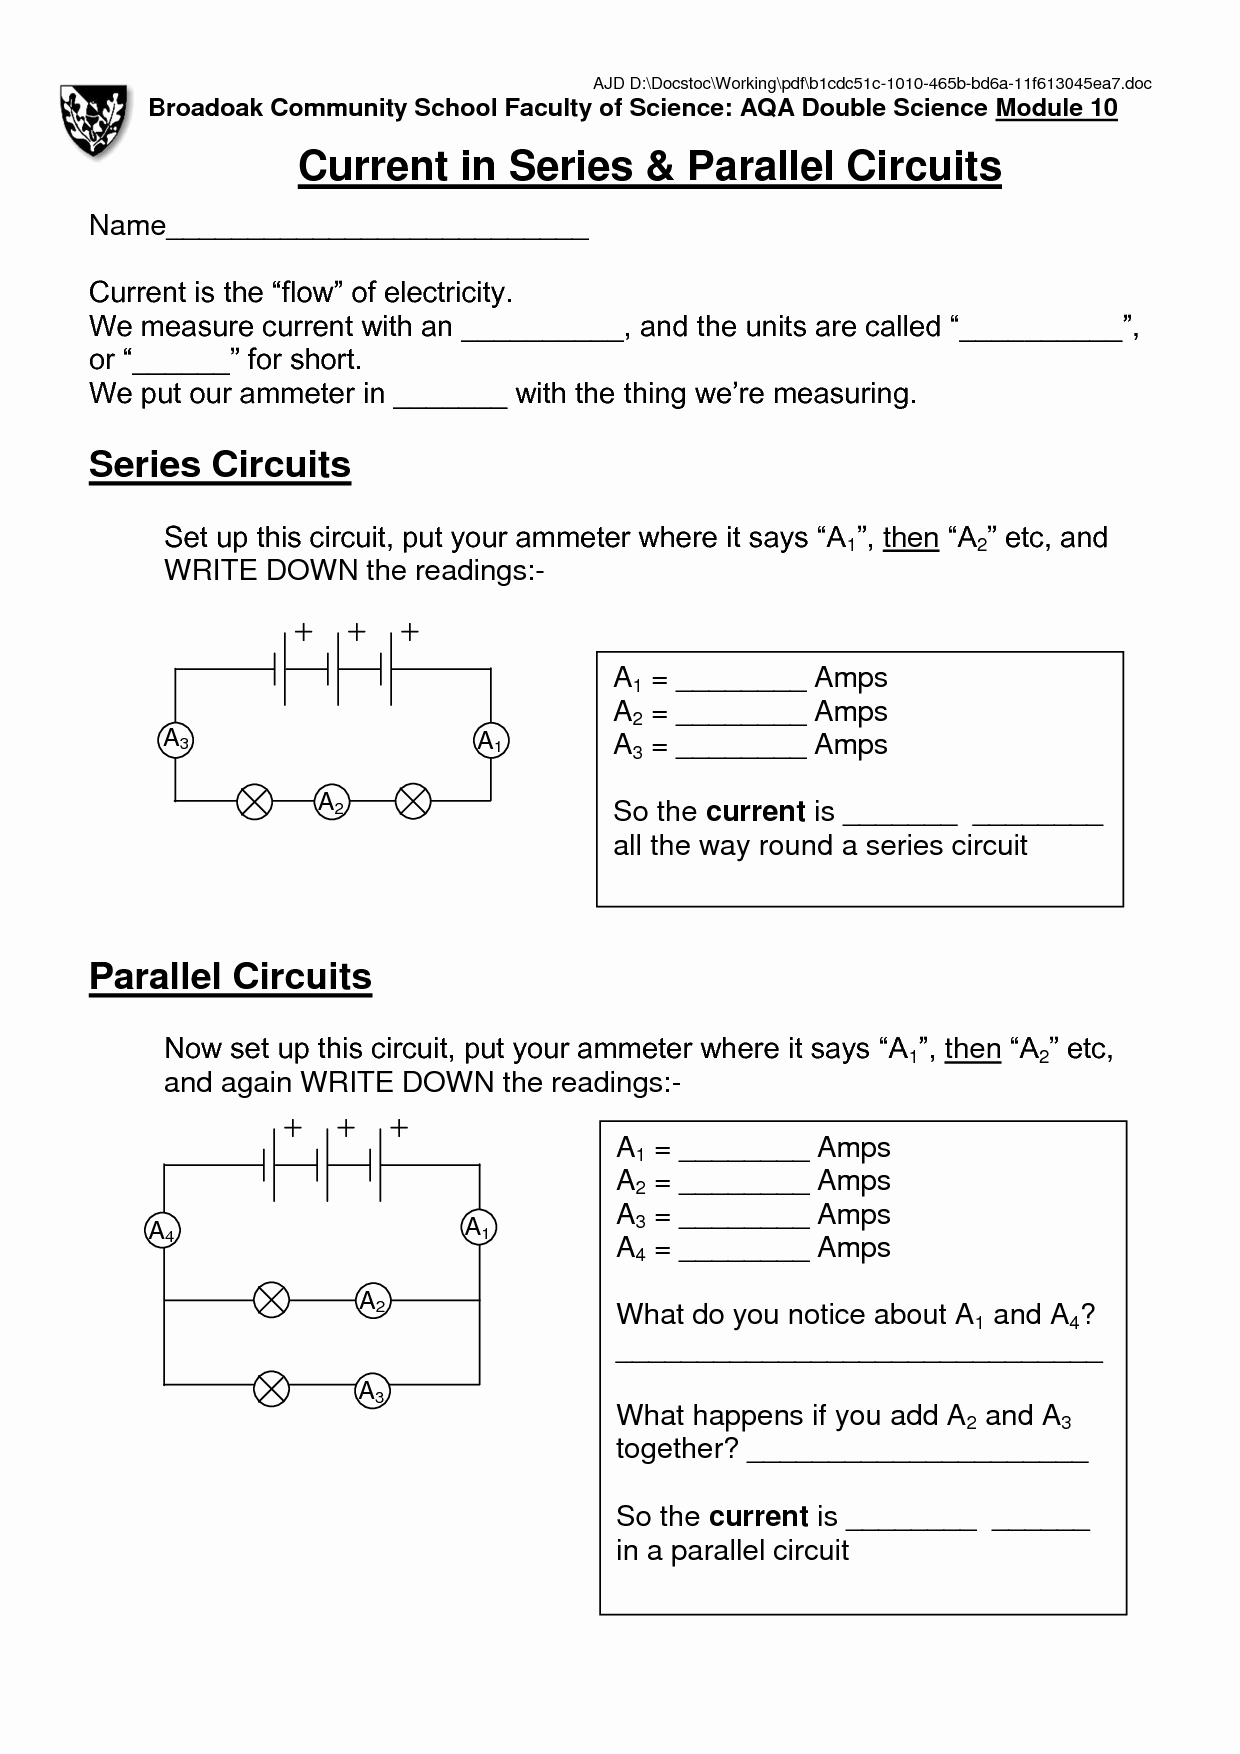 Circuits Worksheet Answer Key Inspirational Circuit Schematic Electronic Diagram Lucylimd